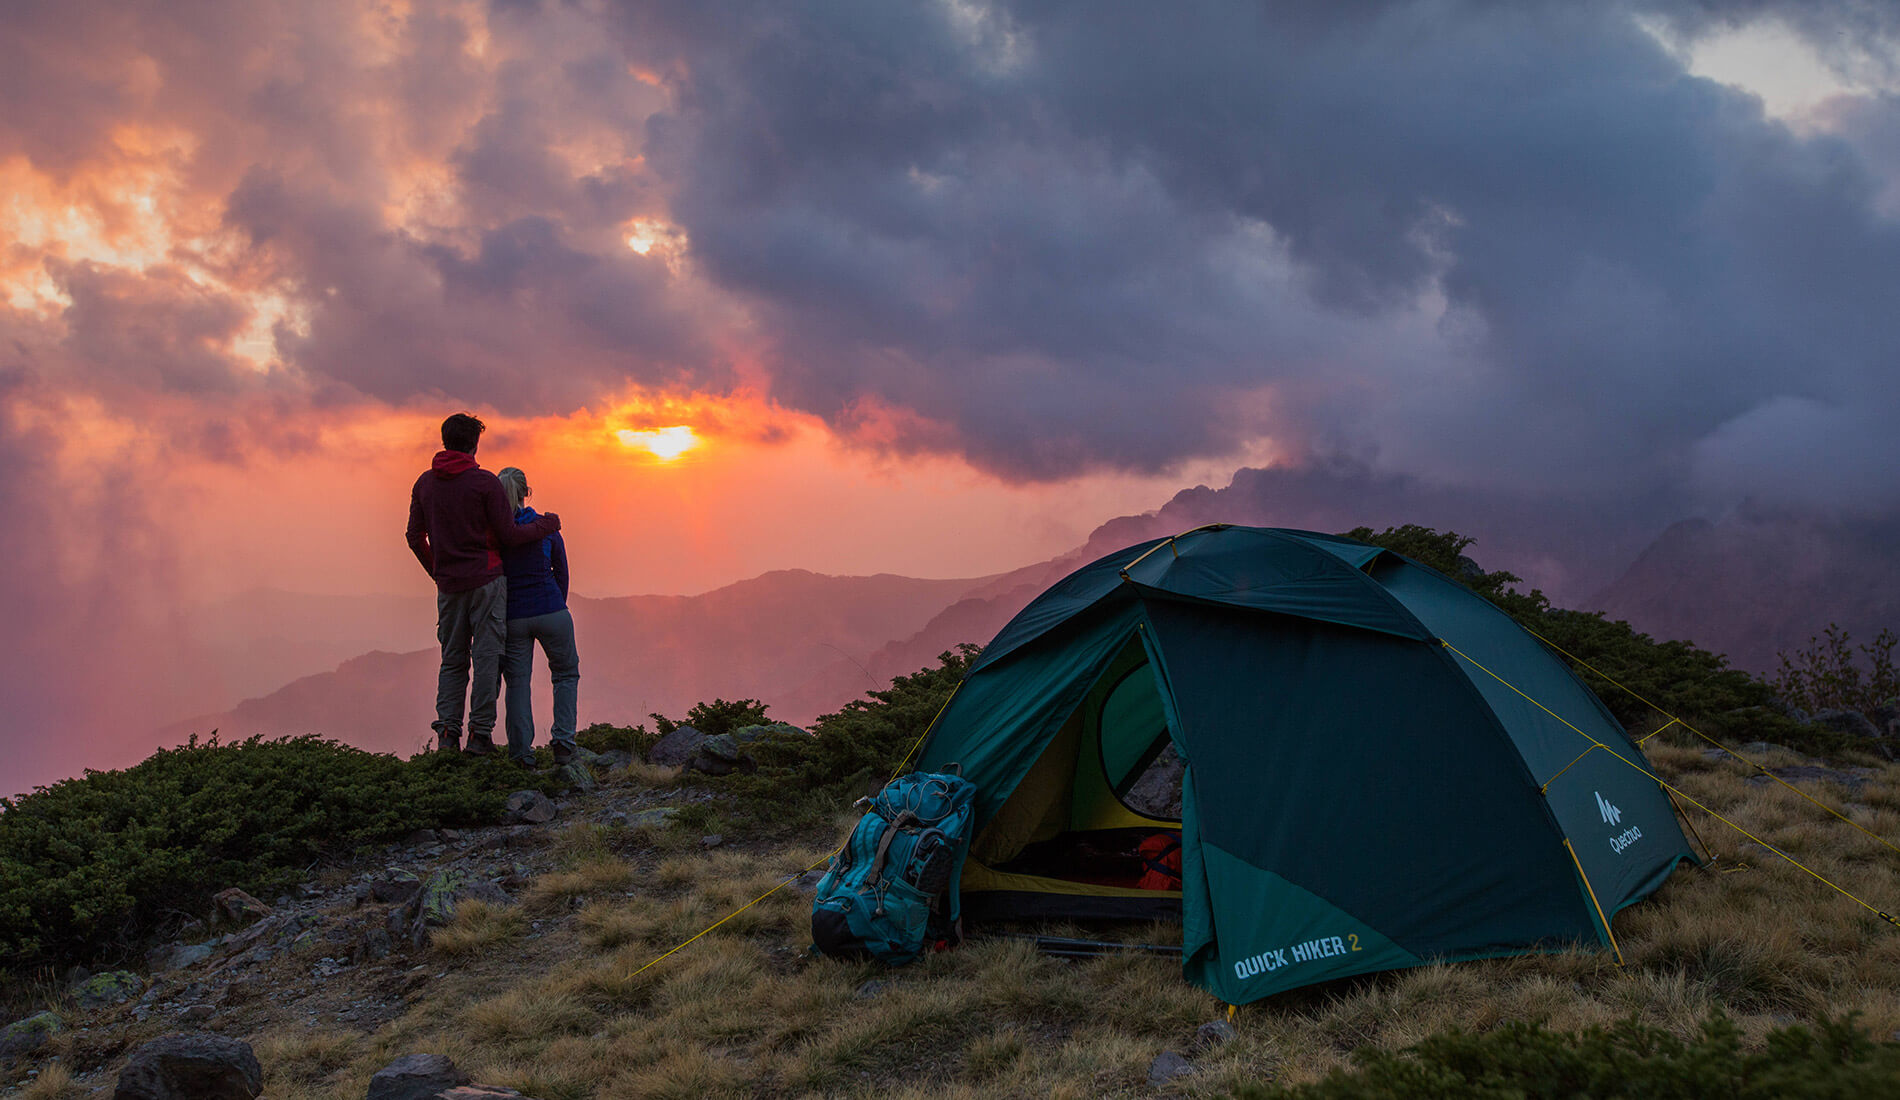 The Best Camping Gadgets and Tools to Try on Your Next Trip